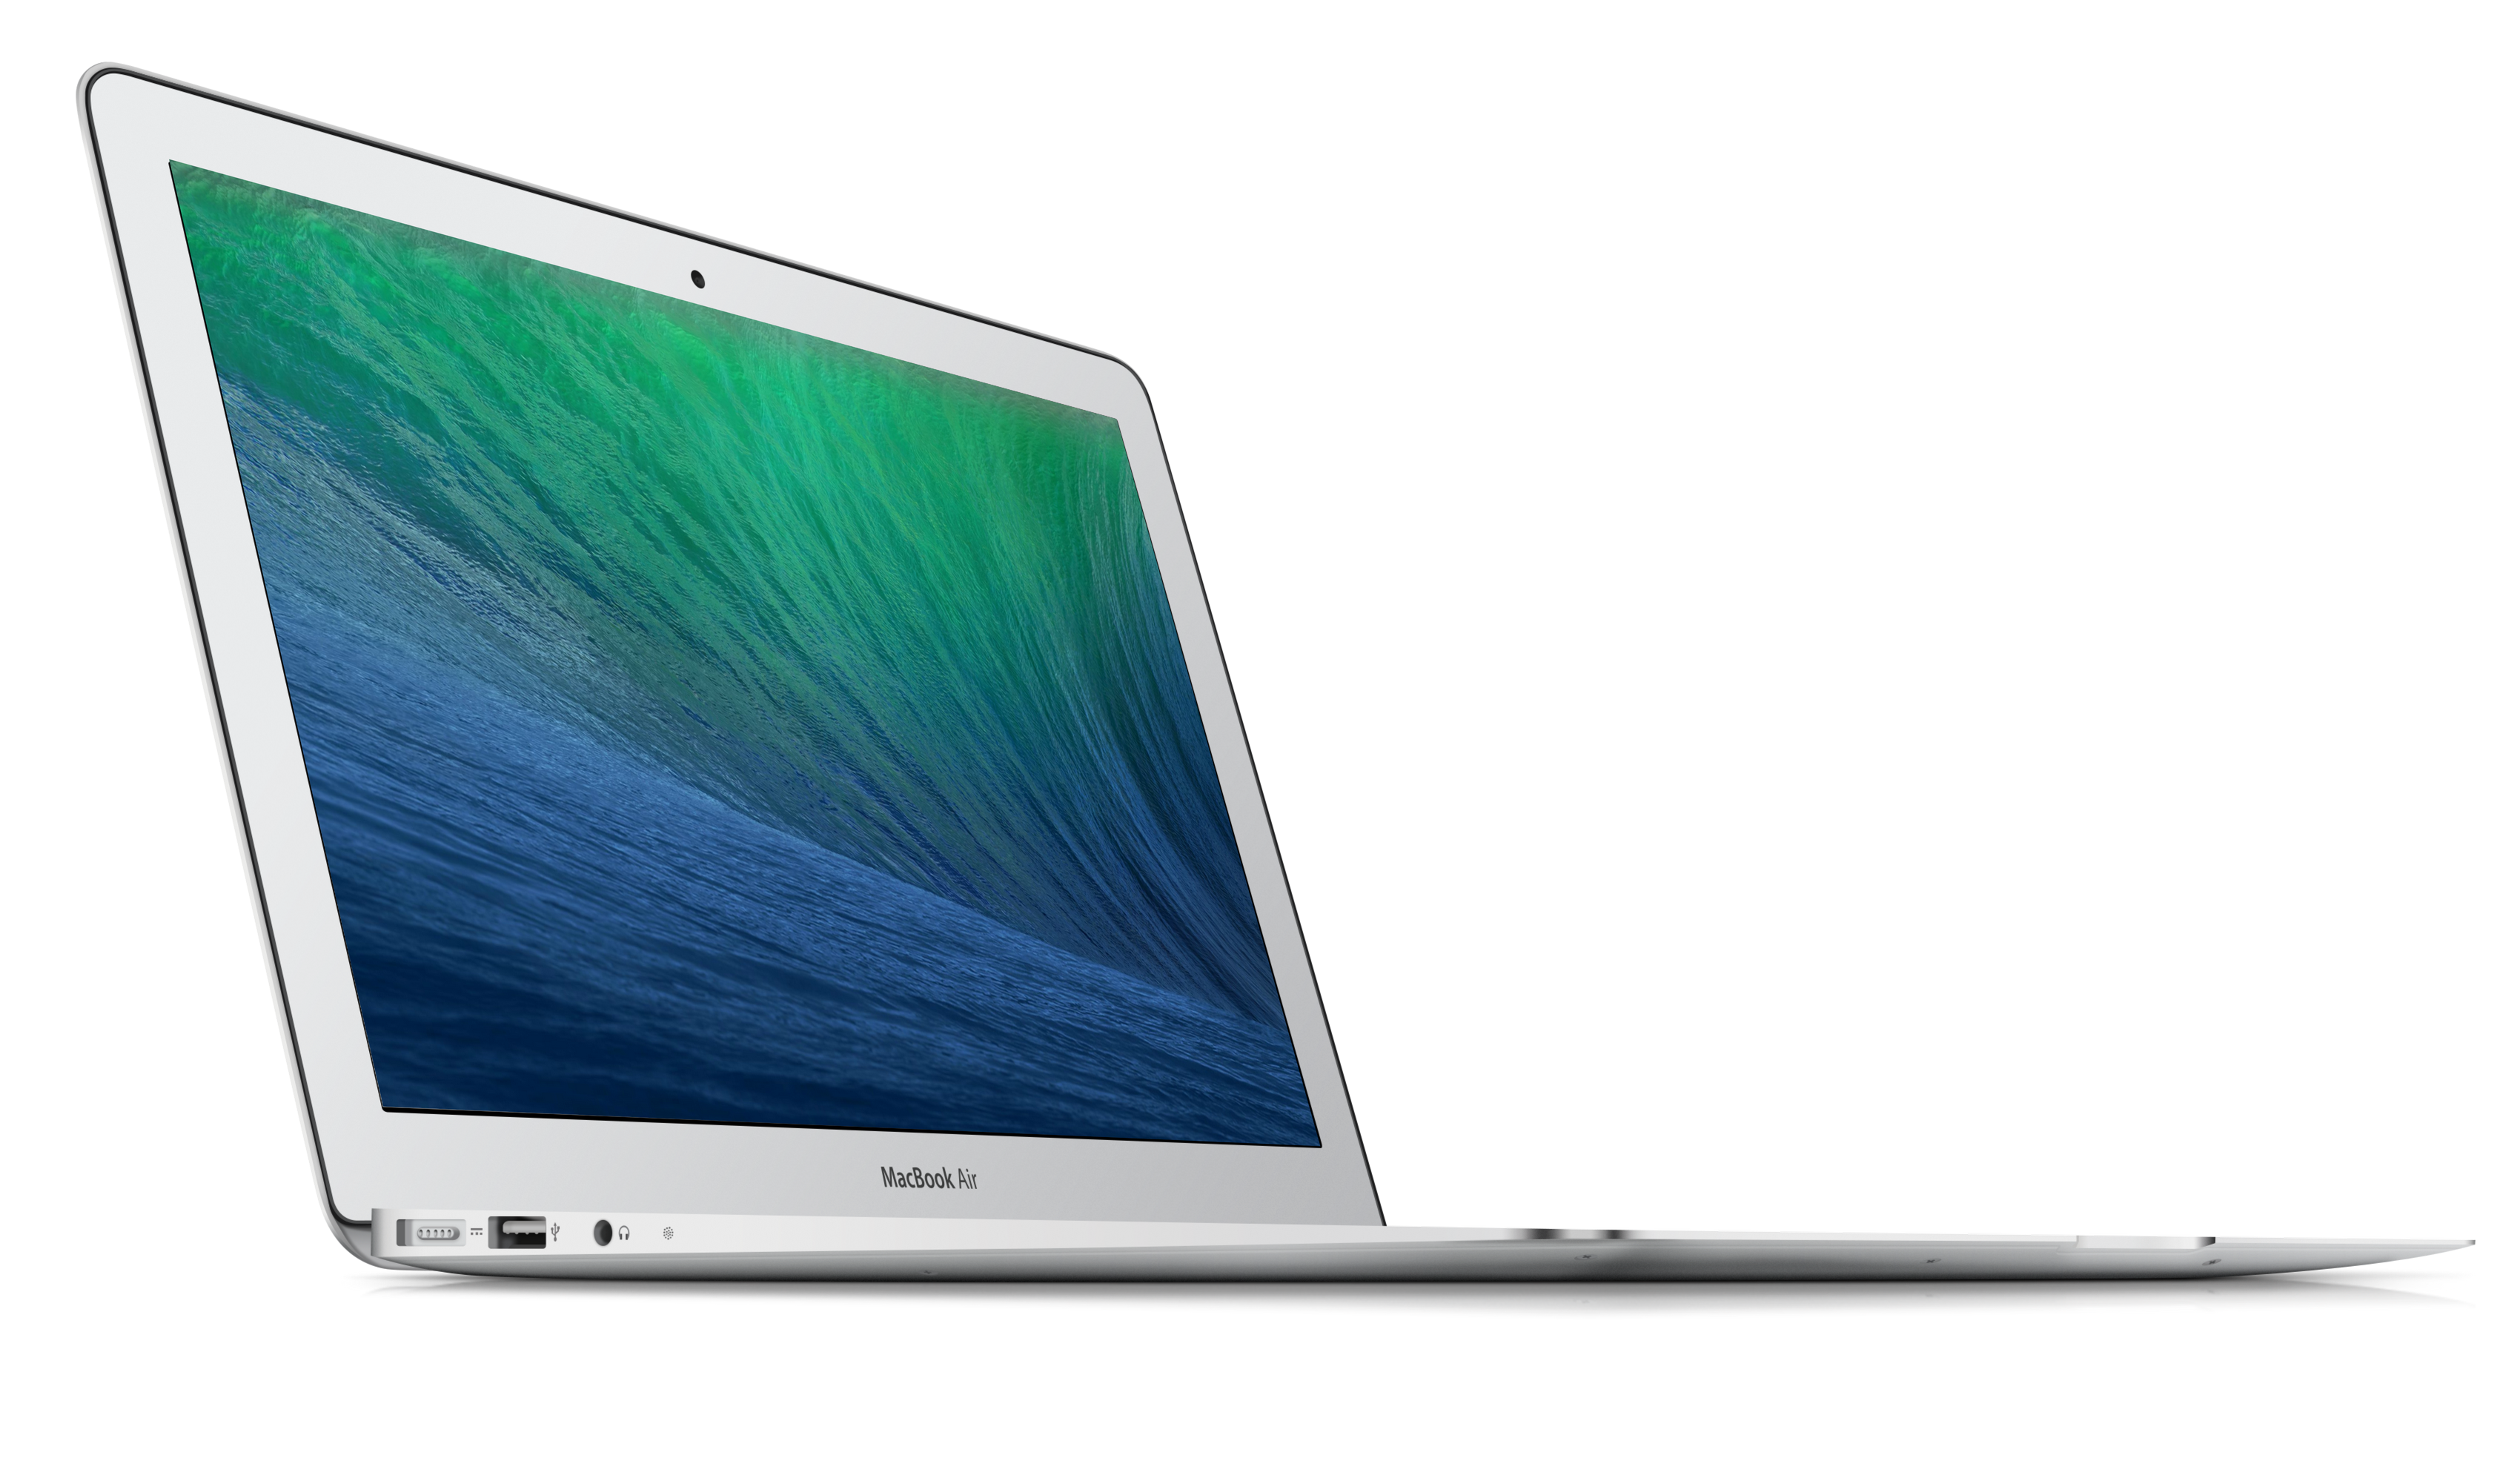 Image purepng free cc. Macbook air png transparent background picture library download